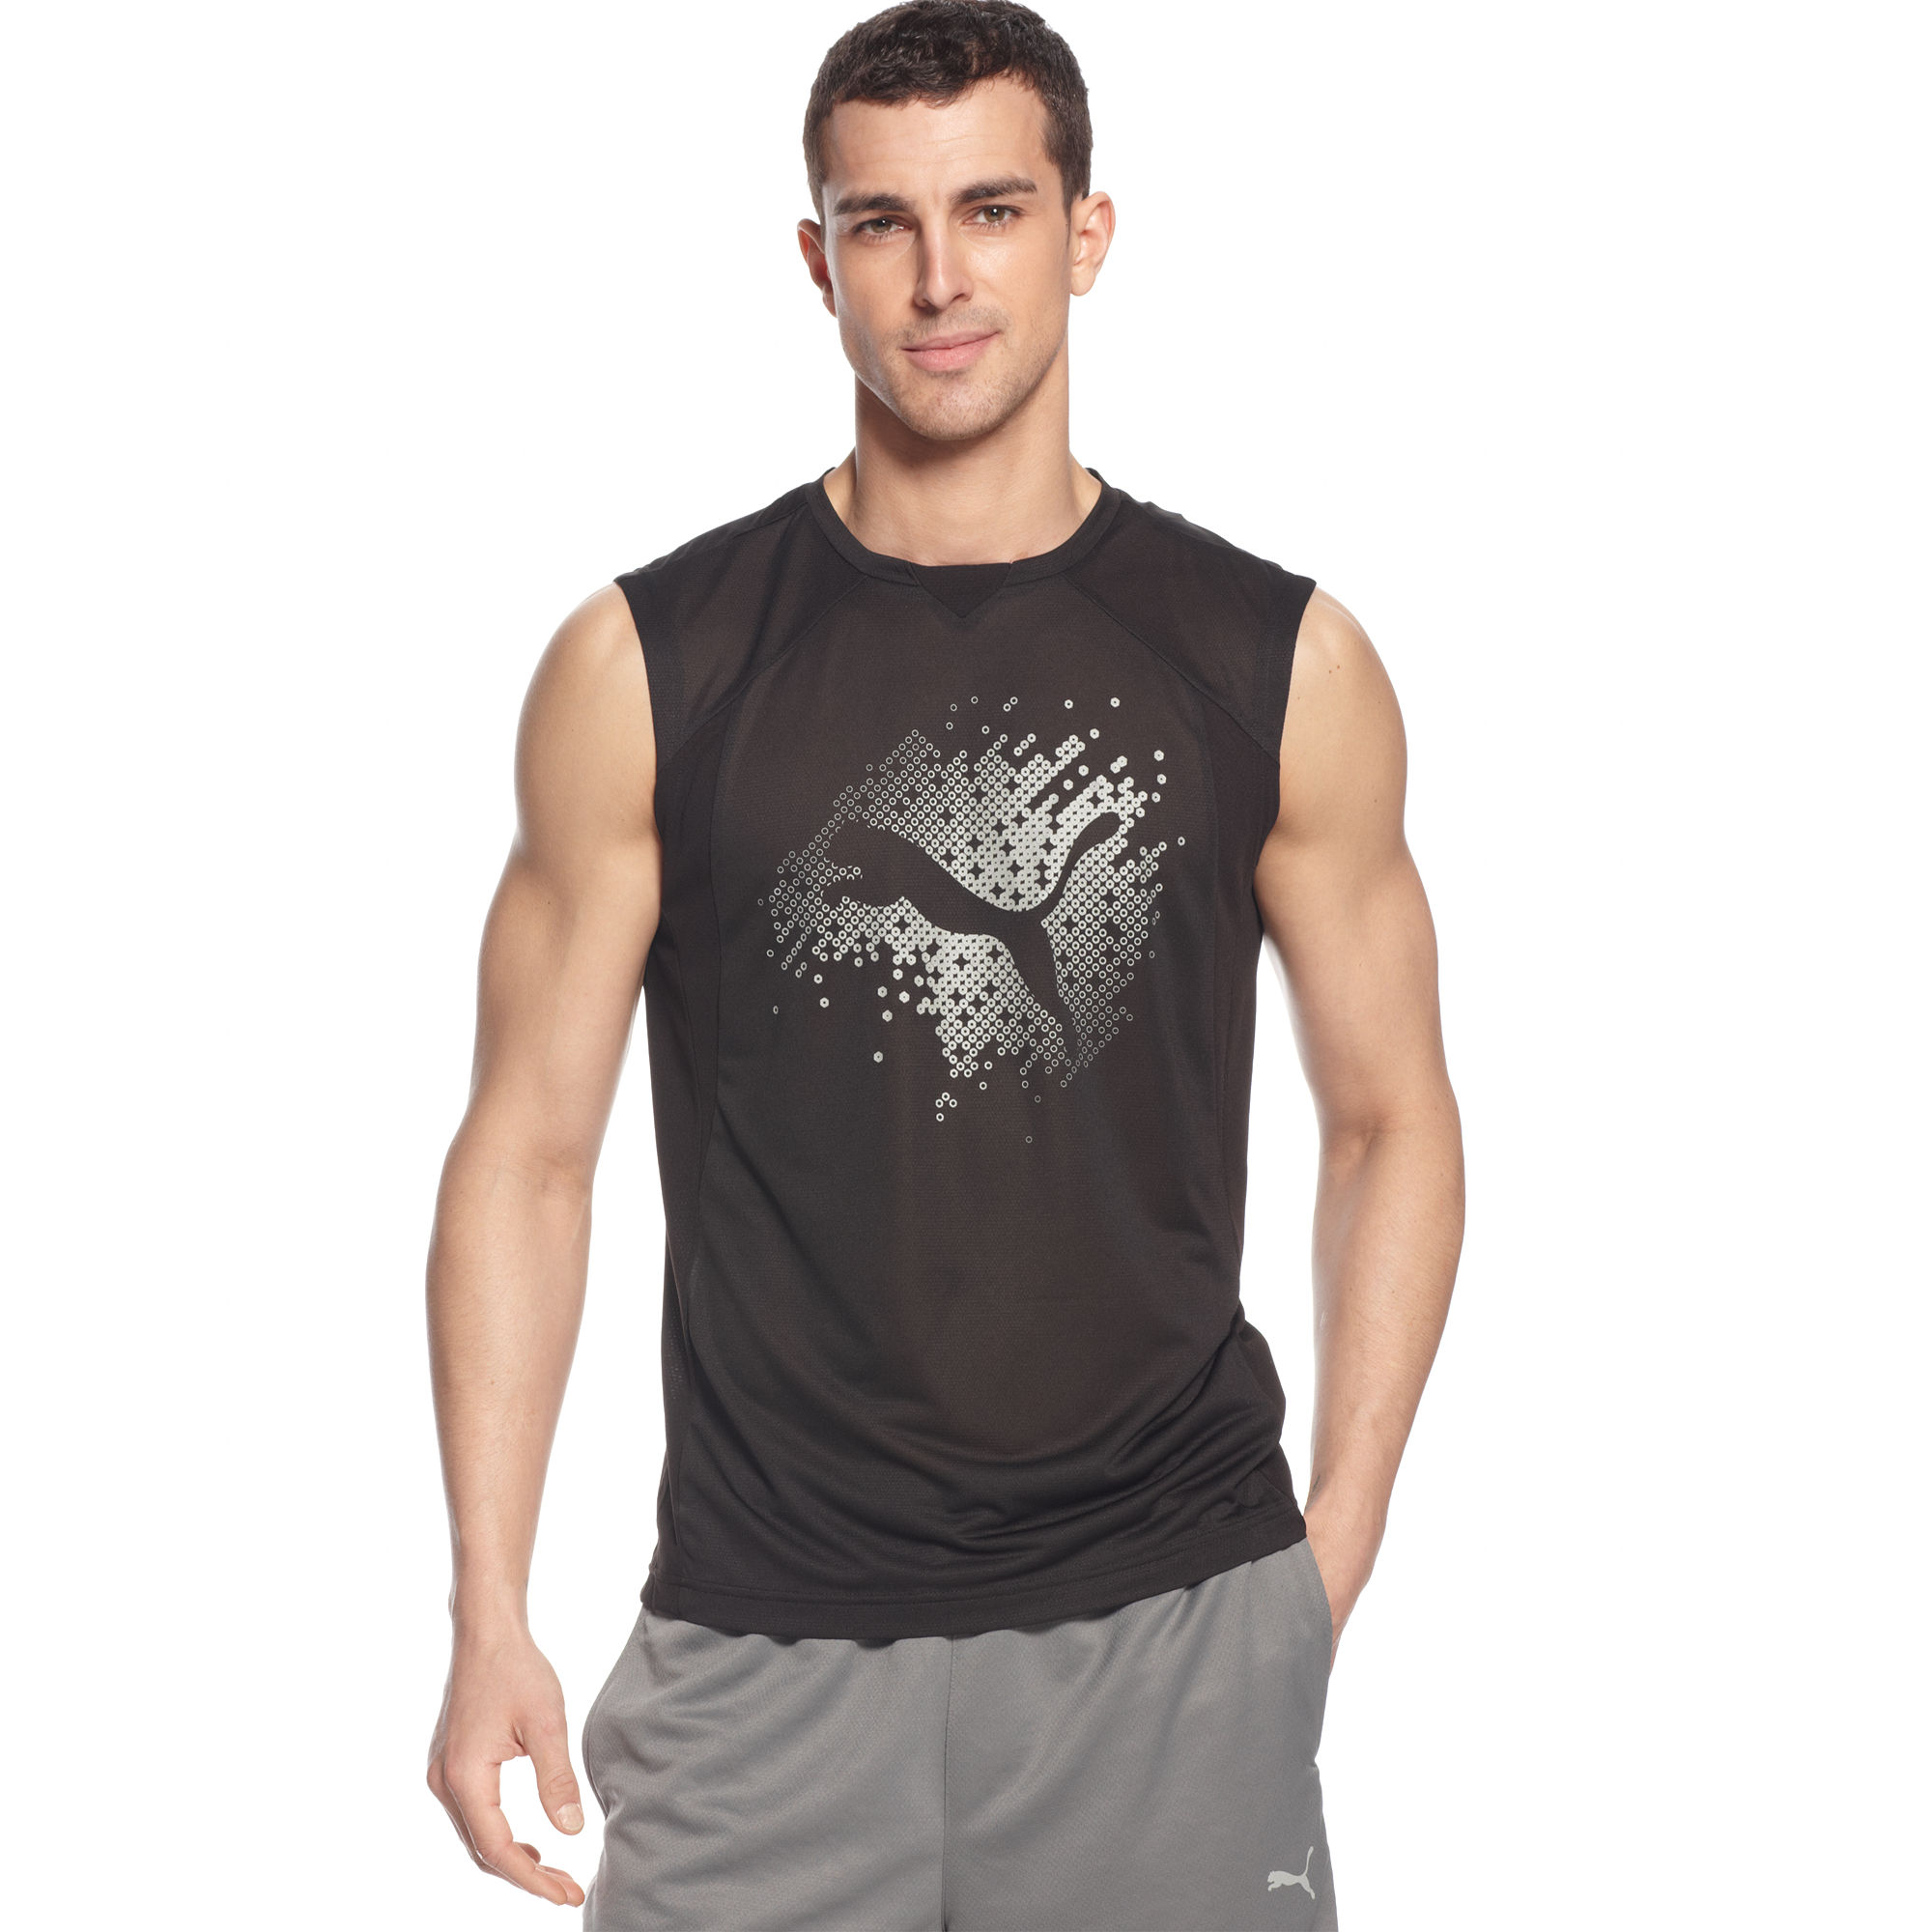 Puma coolcell graphic logo sleeveless tshirt in black for for Sleeveless graphic t shirts